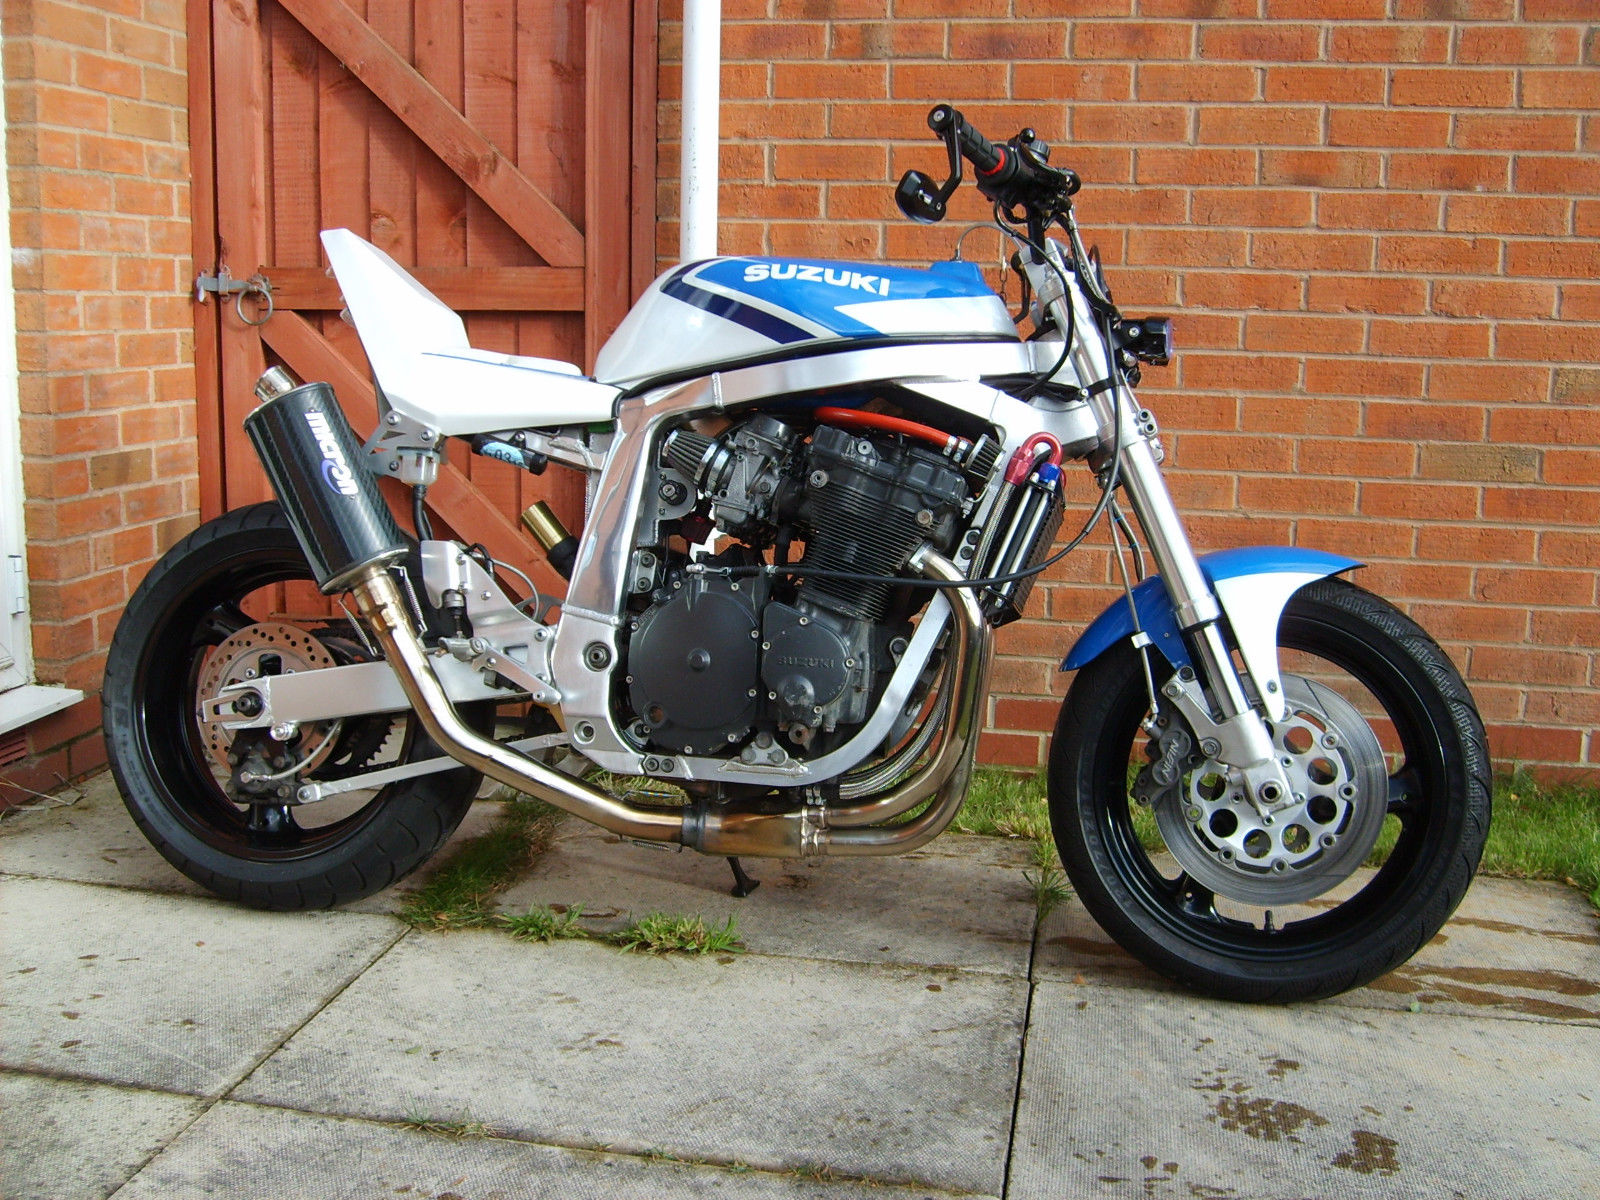 Images of Gsxr Streetfighter Parts - #rock-cafe